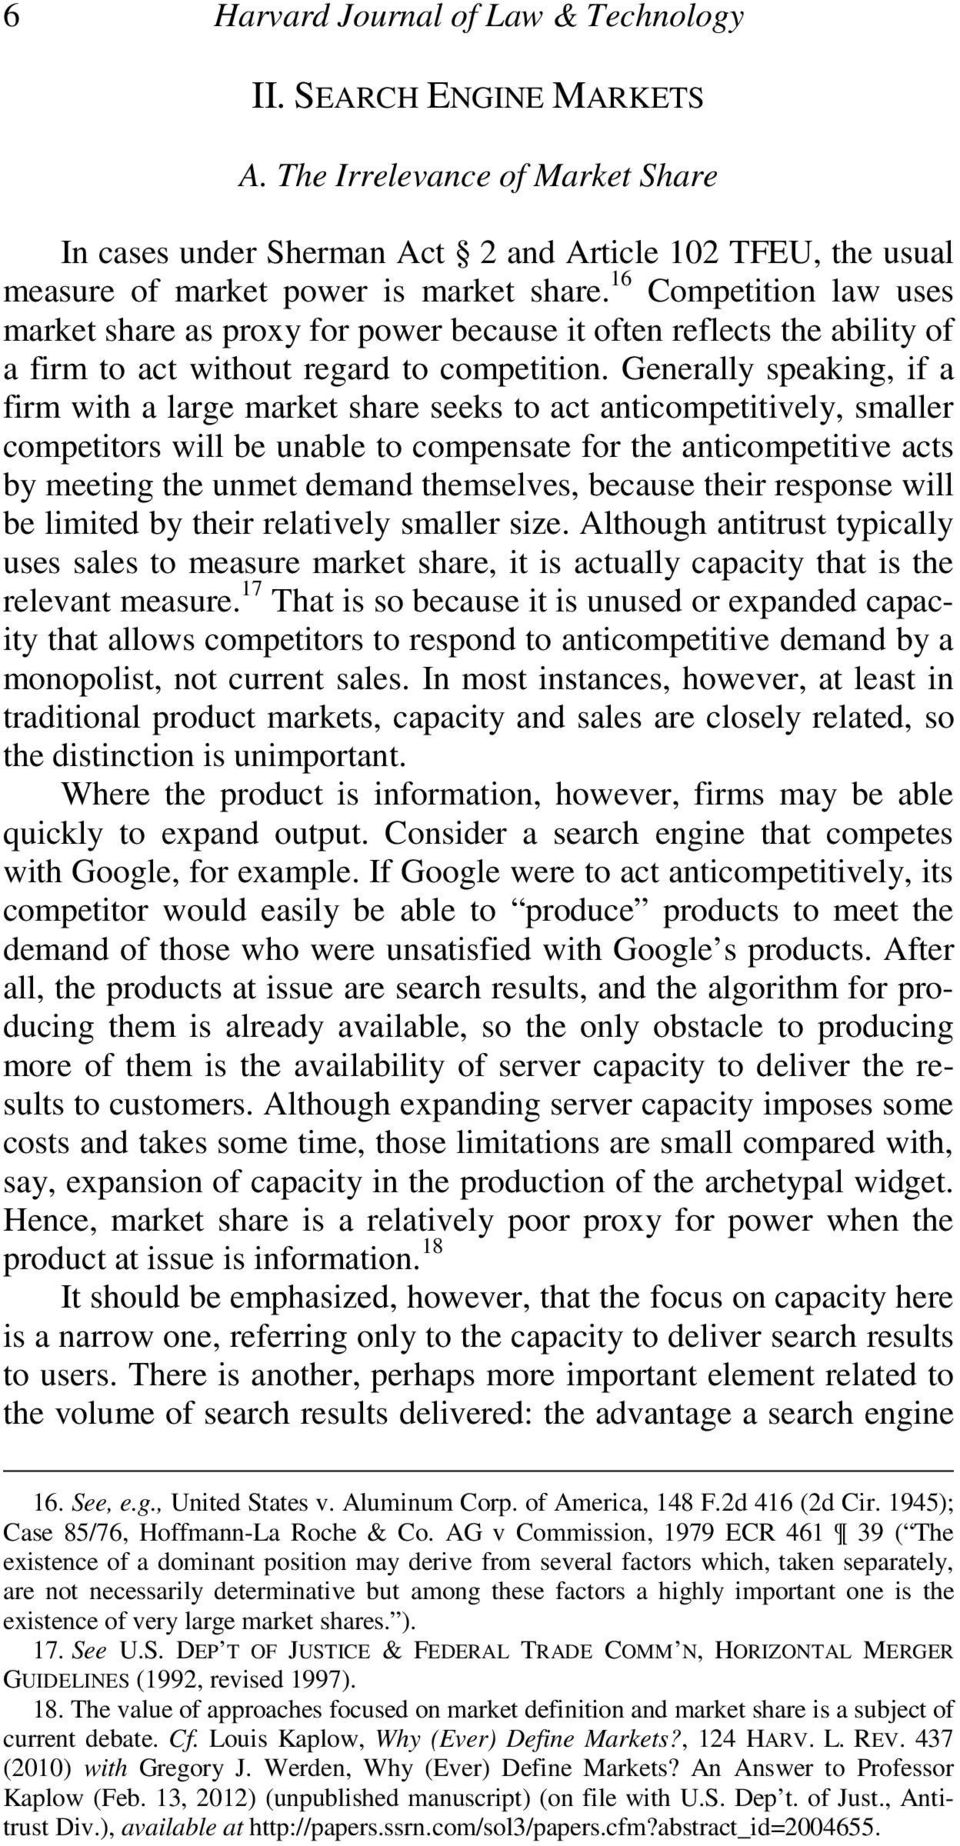 Generally speaking, if a firm with a large market share seeks to act anticompetitively, smaller competitors will be unable to compensate for the anticompetitive acts by meeting the unmet demand